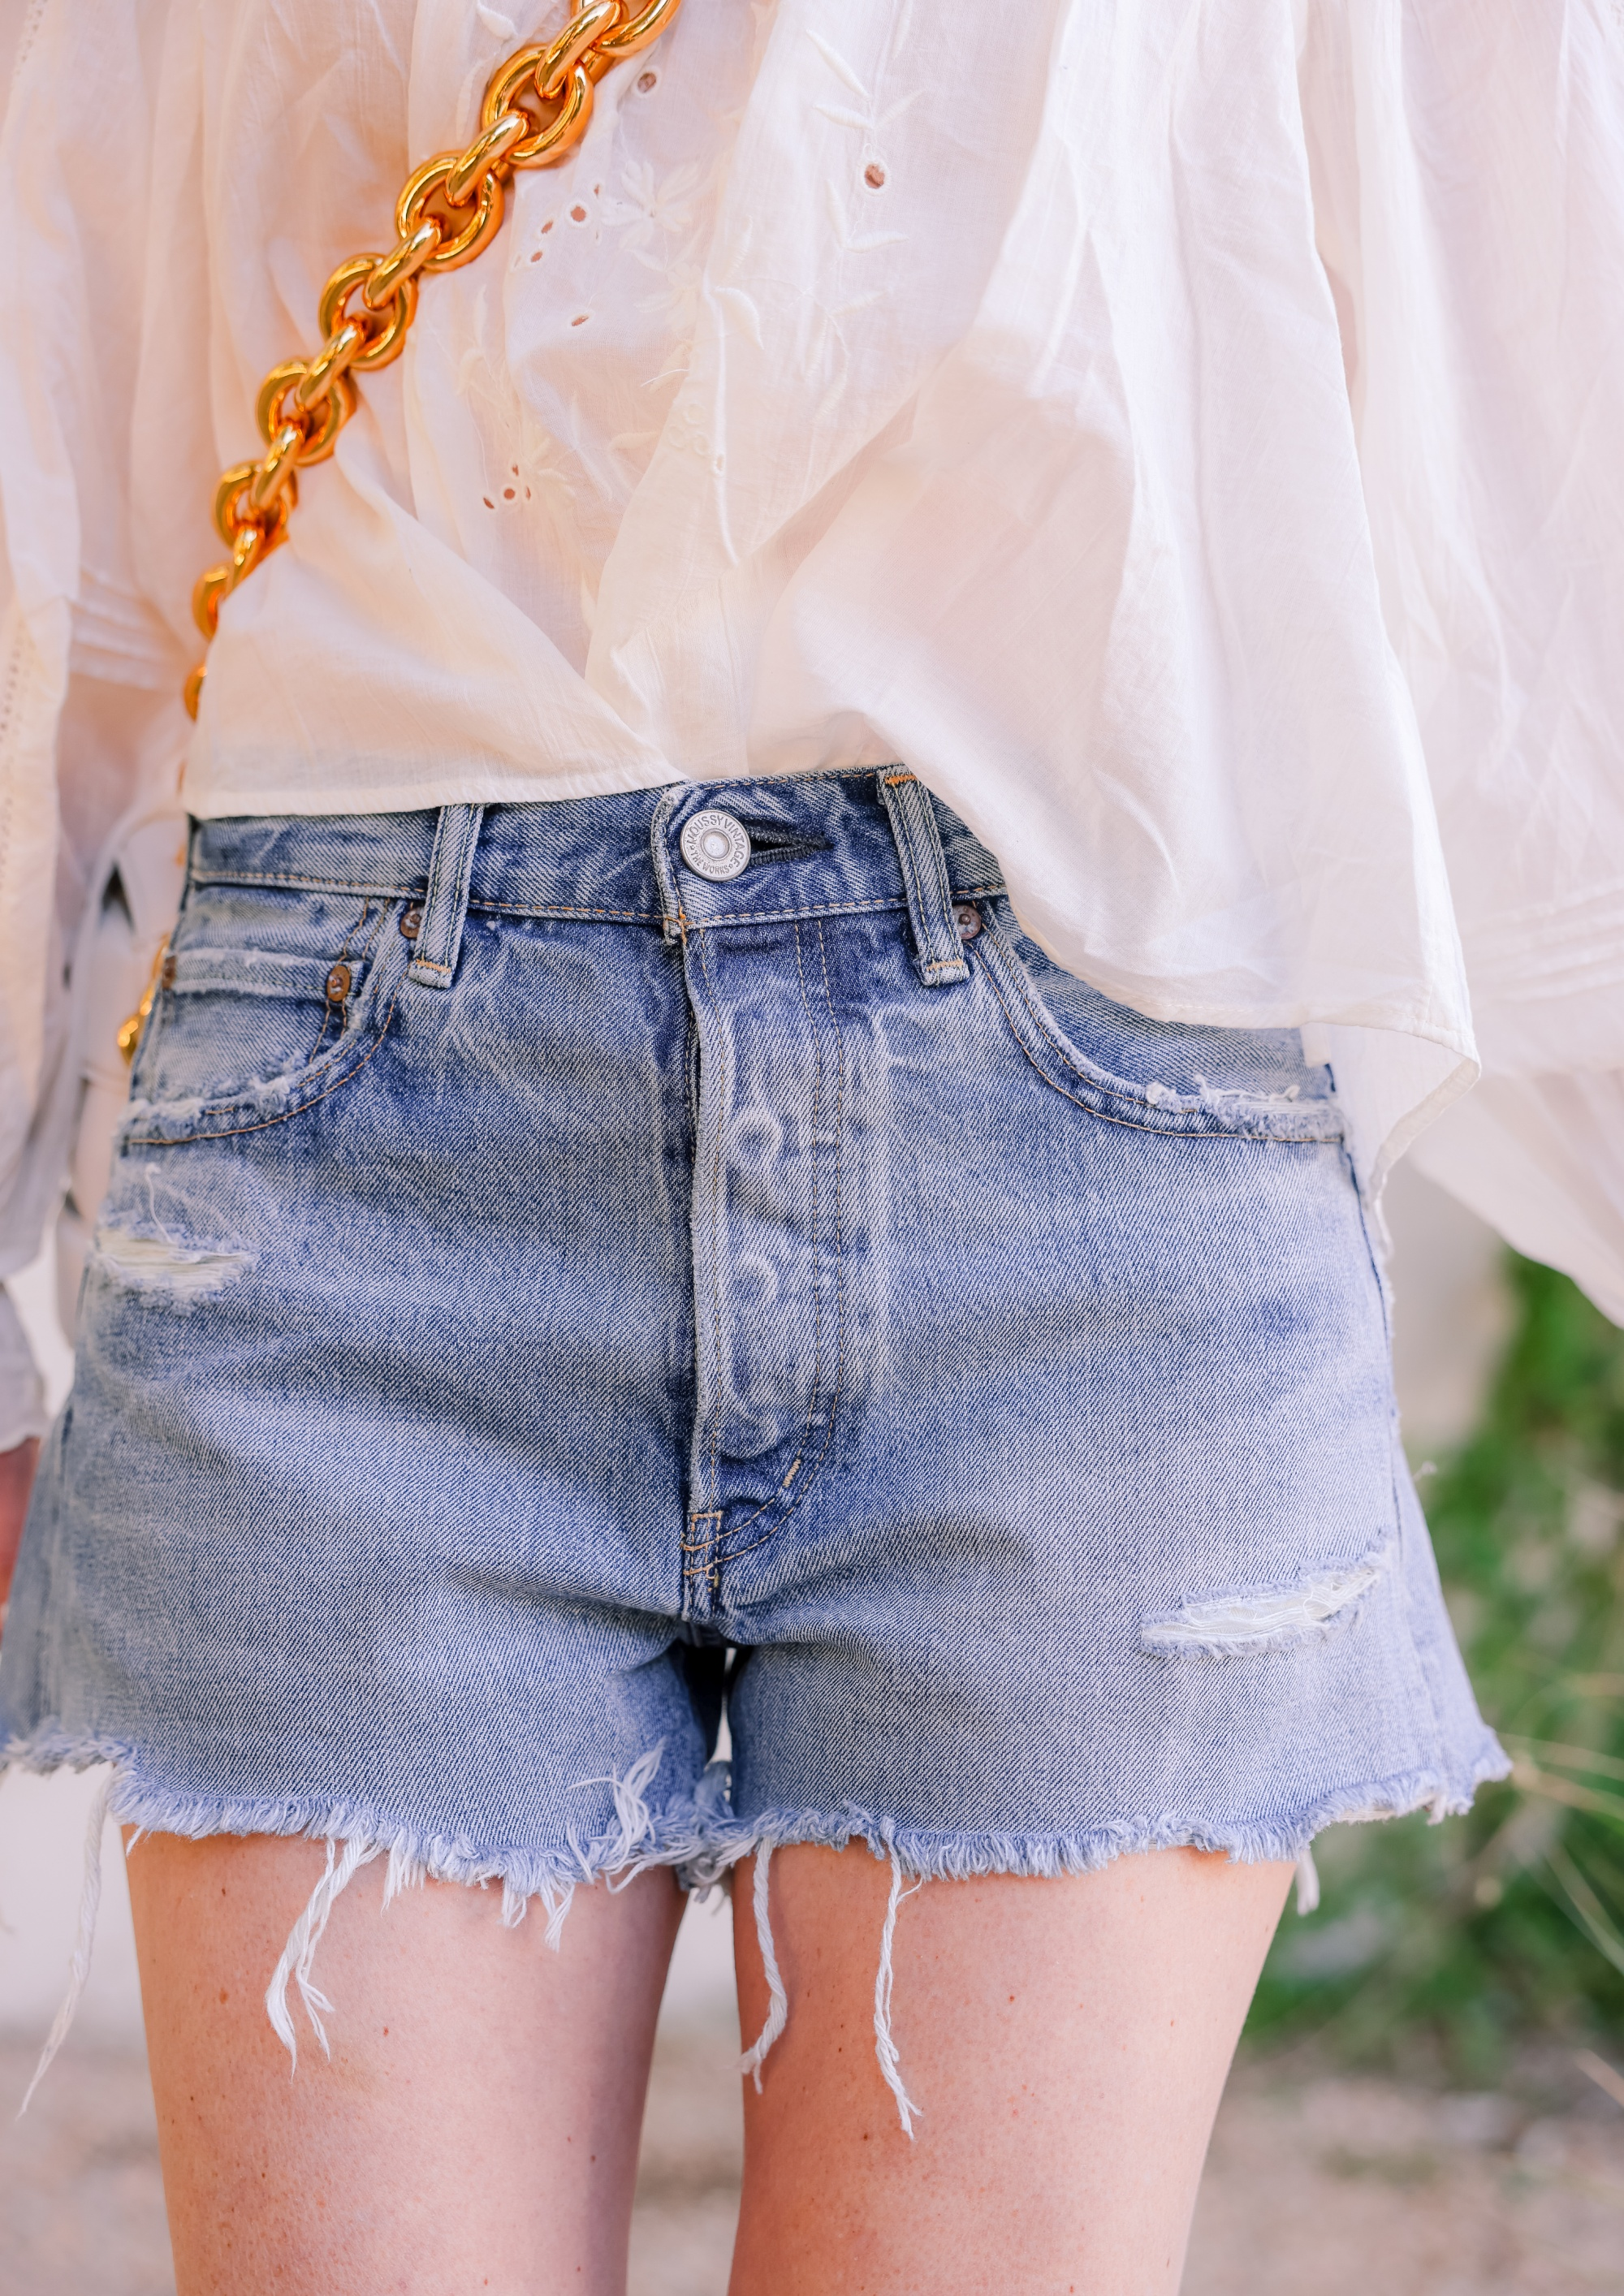 Moussy Vintage denim shorts, Erin Busbee, jean shorts, how should denim shorts fit, shorts for middle aged woman, how to wear shorts over 40, length of shorts womens, shorts inseam guide womens, are my shorts too short, jean shorts outfit, cute shorts, mom shorts outfit